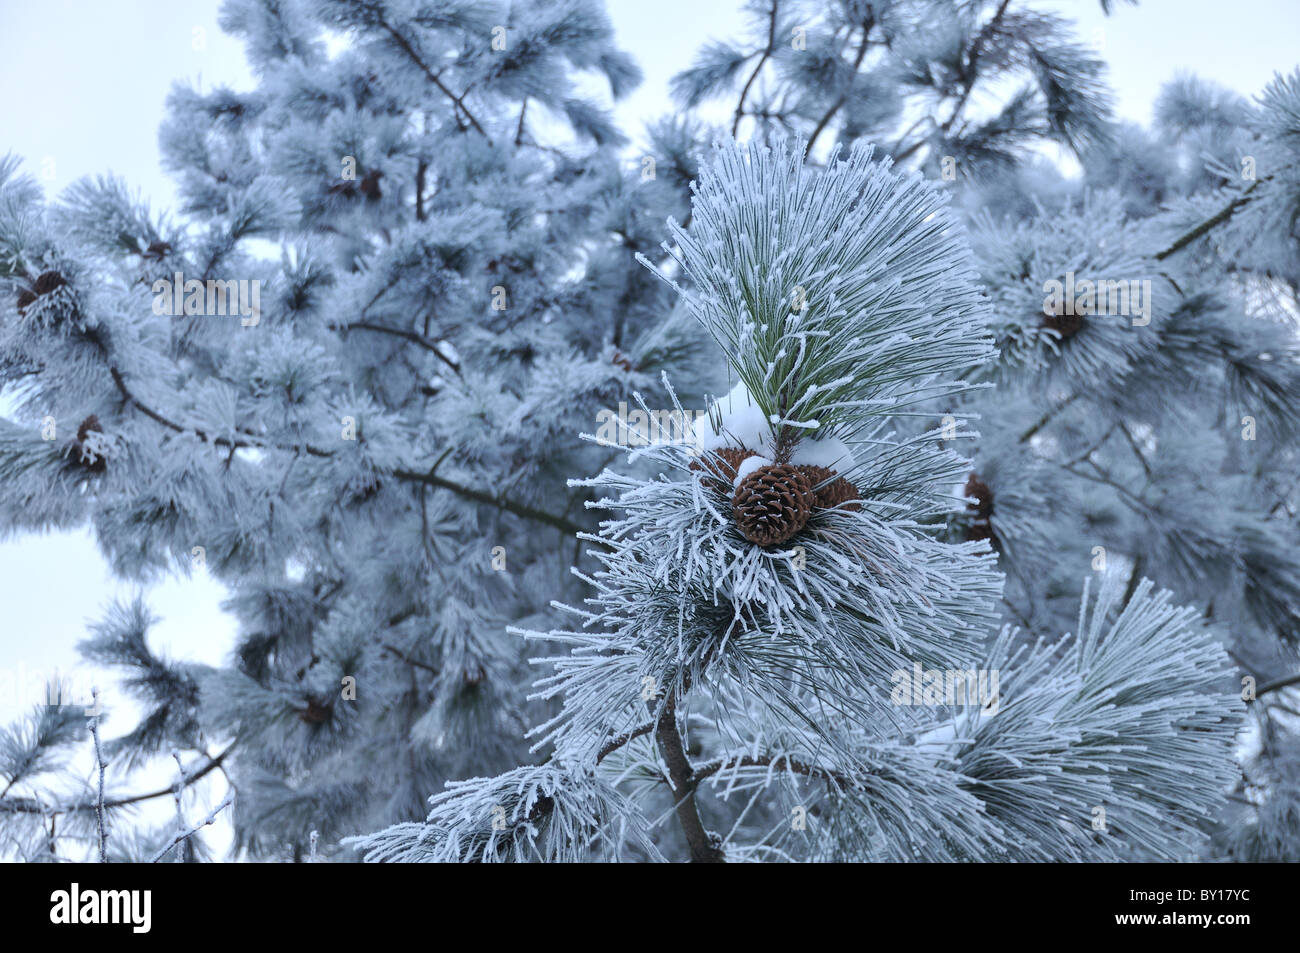 Pine tree covered in frost - Stock Image